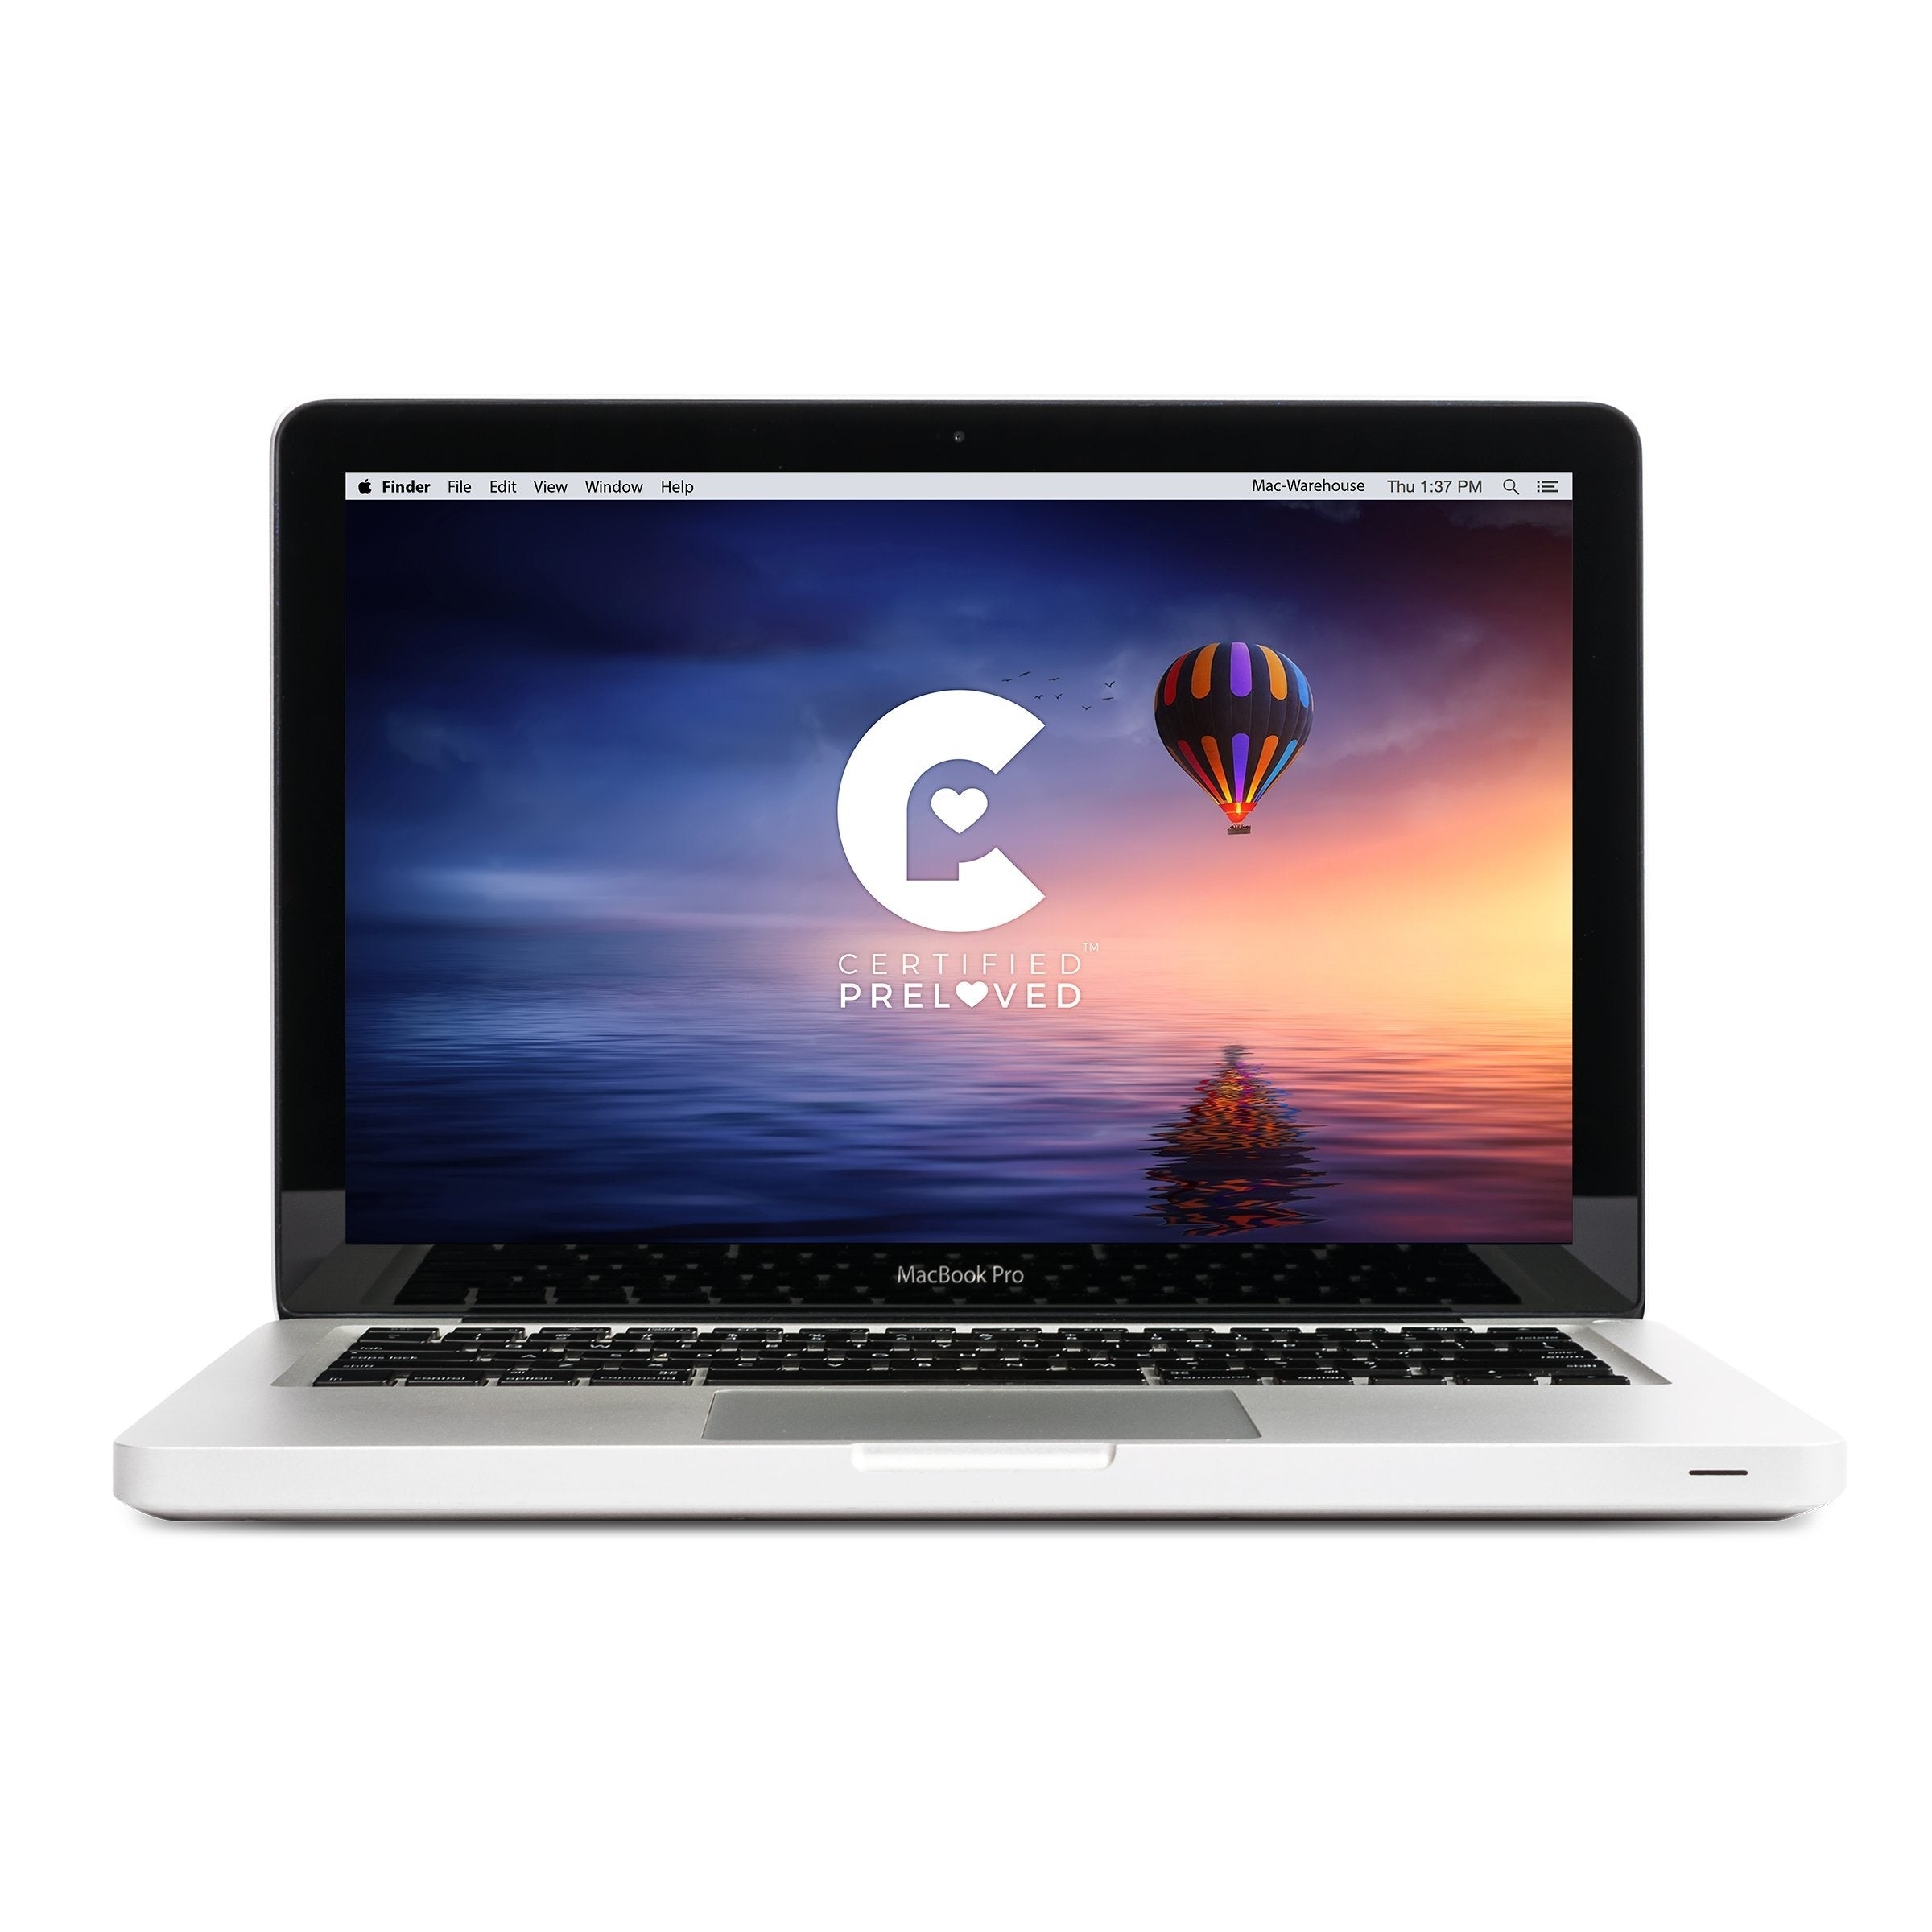 Apple MD101LL/A 13.3 inch Macbook Pro DCi5 2.5 GHz SSD - Refurbished by Overstock 256GB SSD - 4 GB